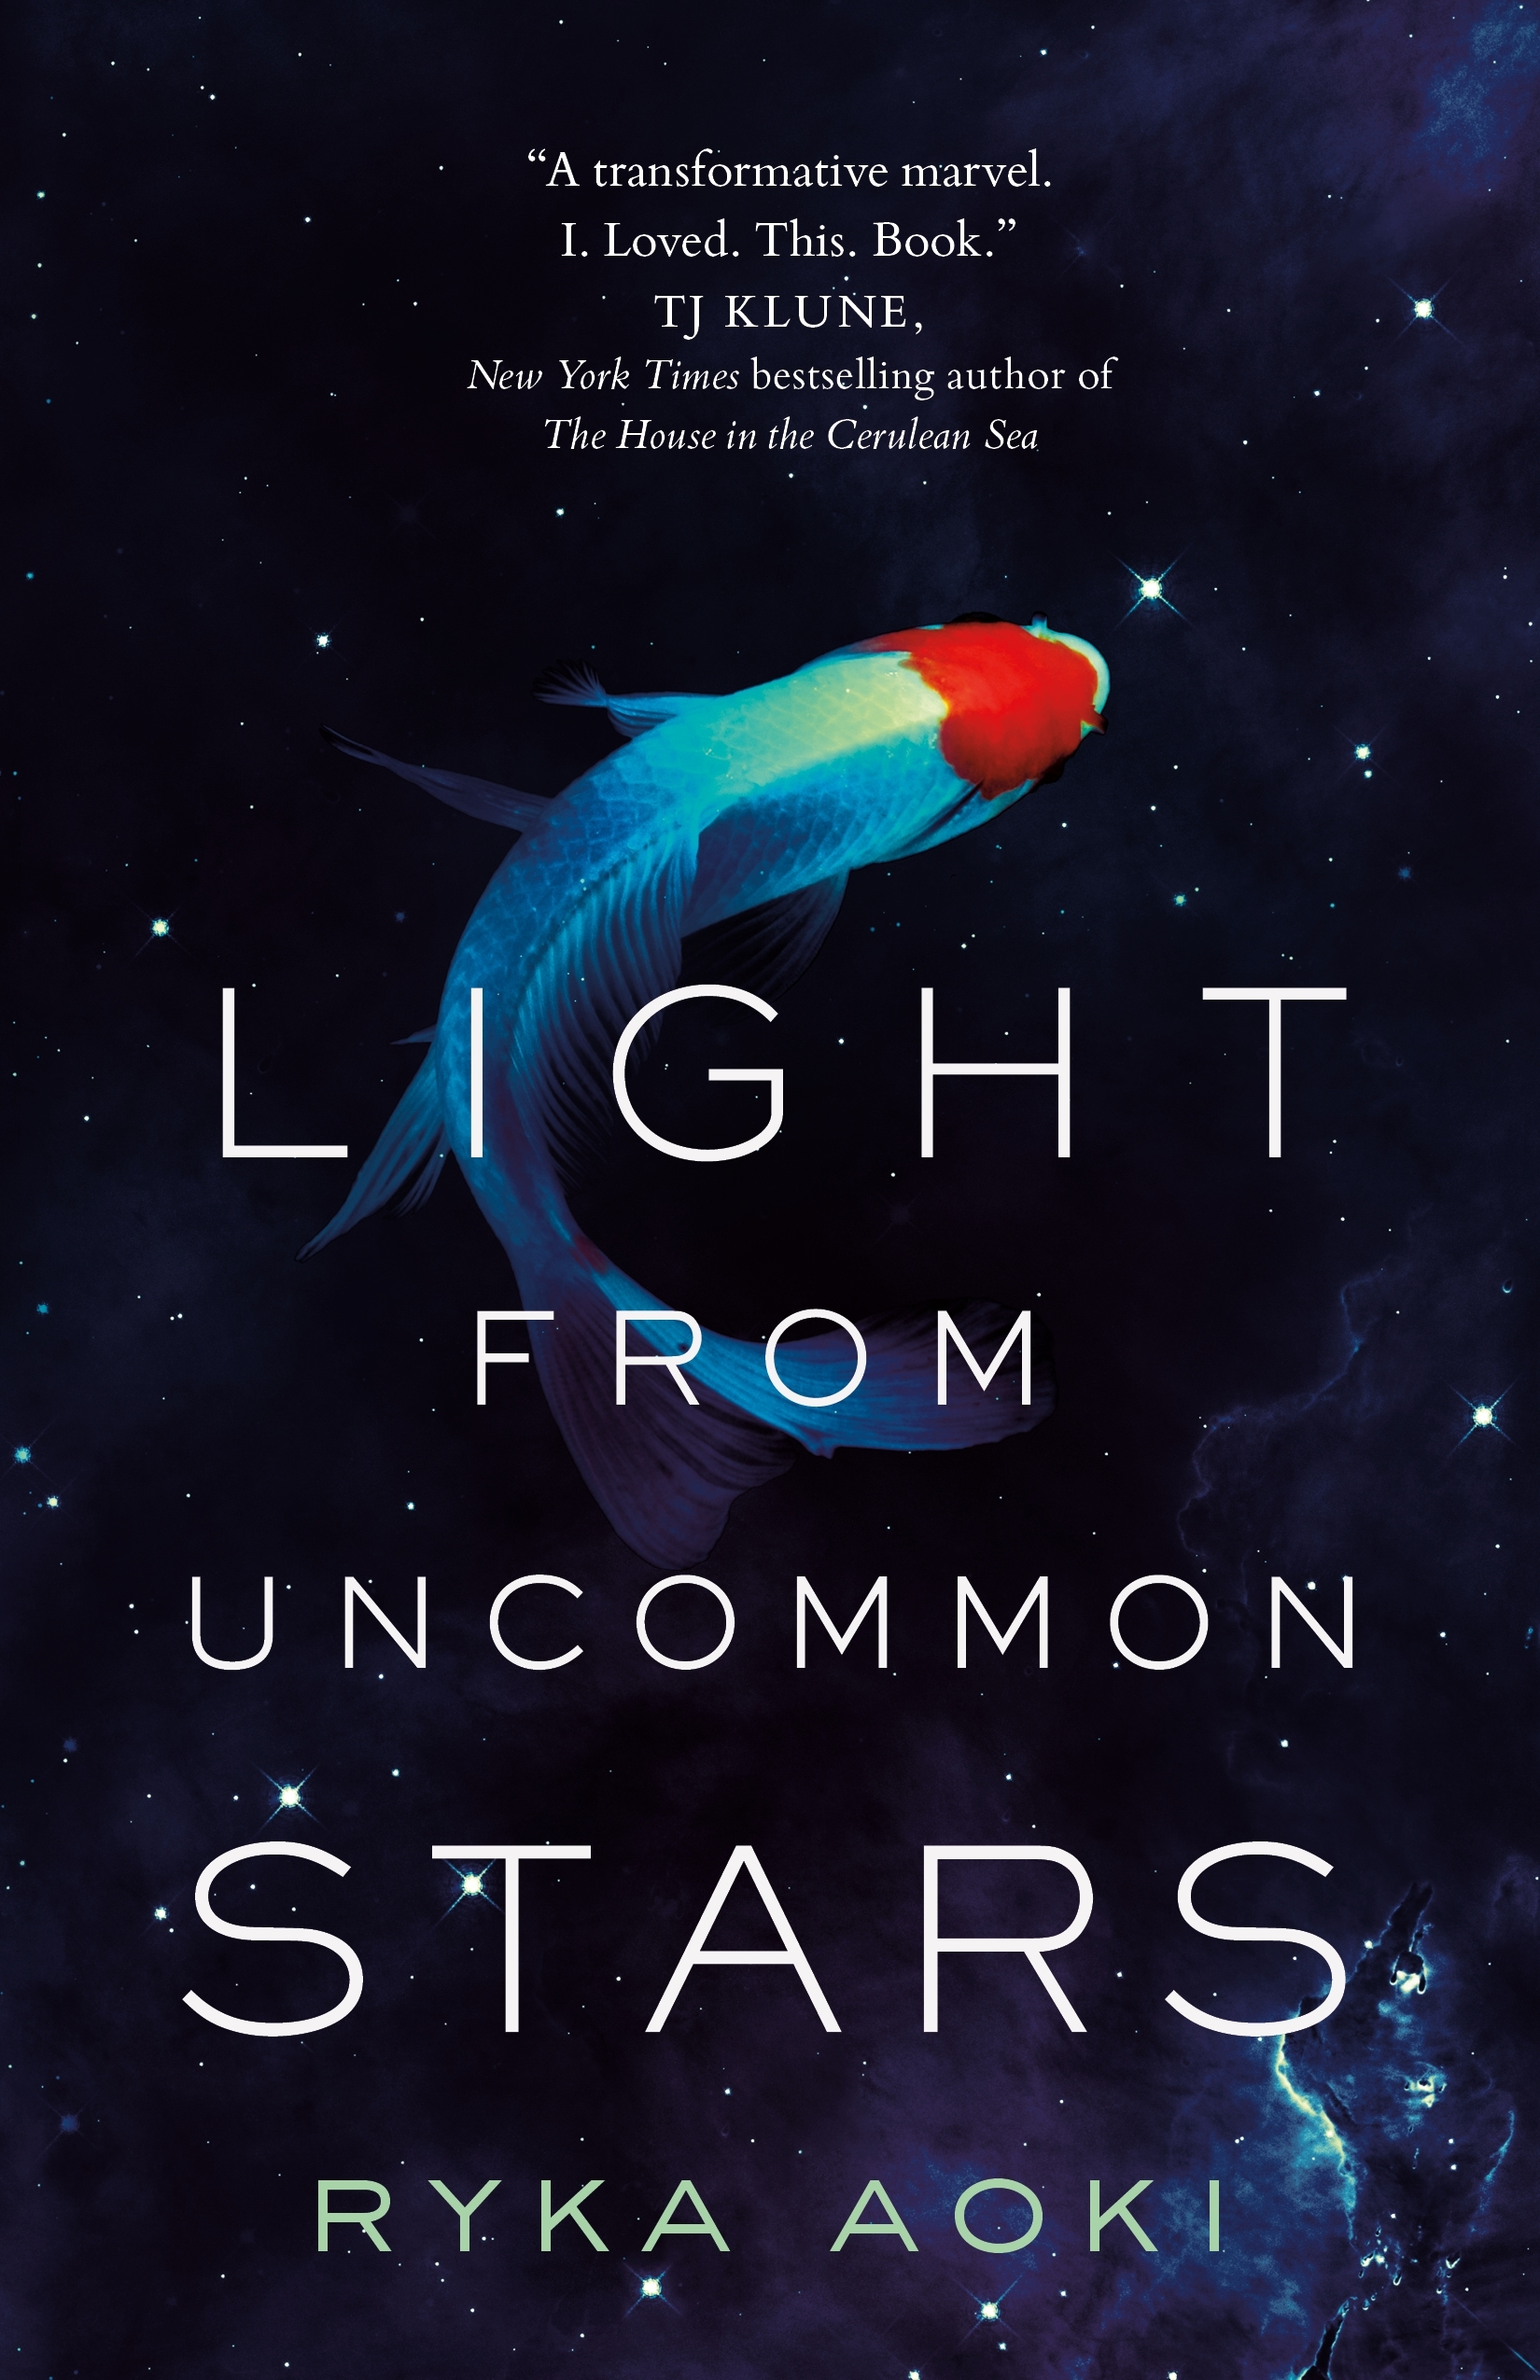 Book Cover for Light from Uncommon Stars by Aoki